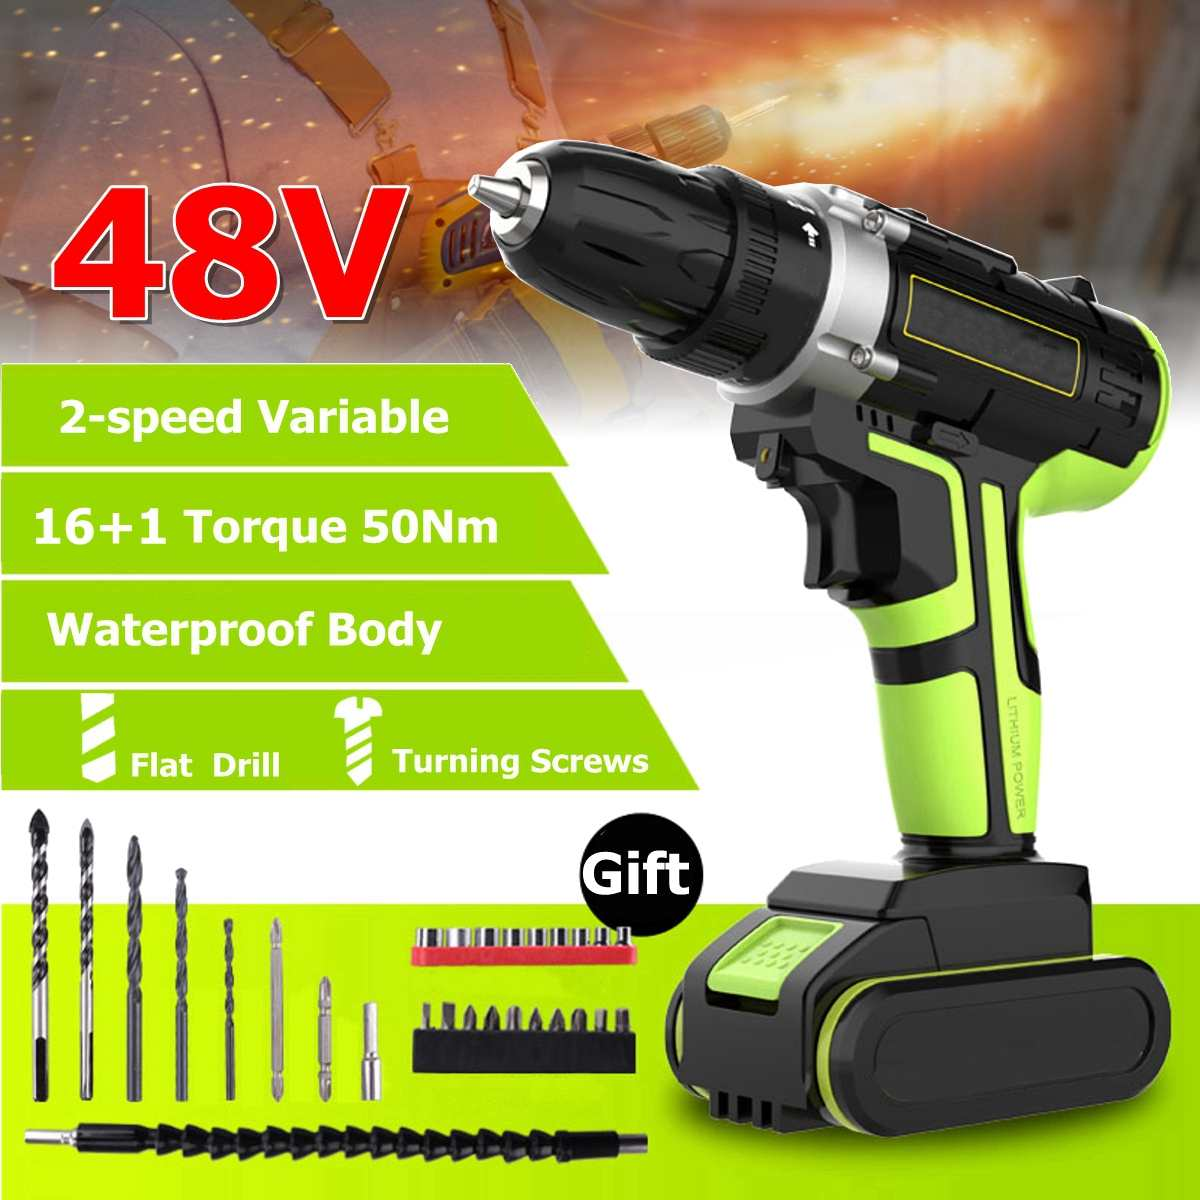 Electric Drills Power Tools Orderly Professional 48v Cordless Drill Daul-speed Adjustment Led Lighting Large Capacity Battery 50nm 16+1 Torque 28pcs Accessories